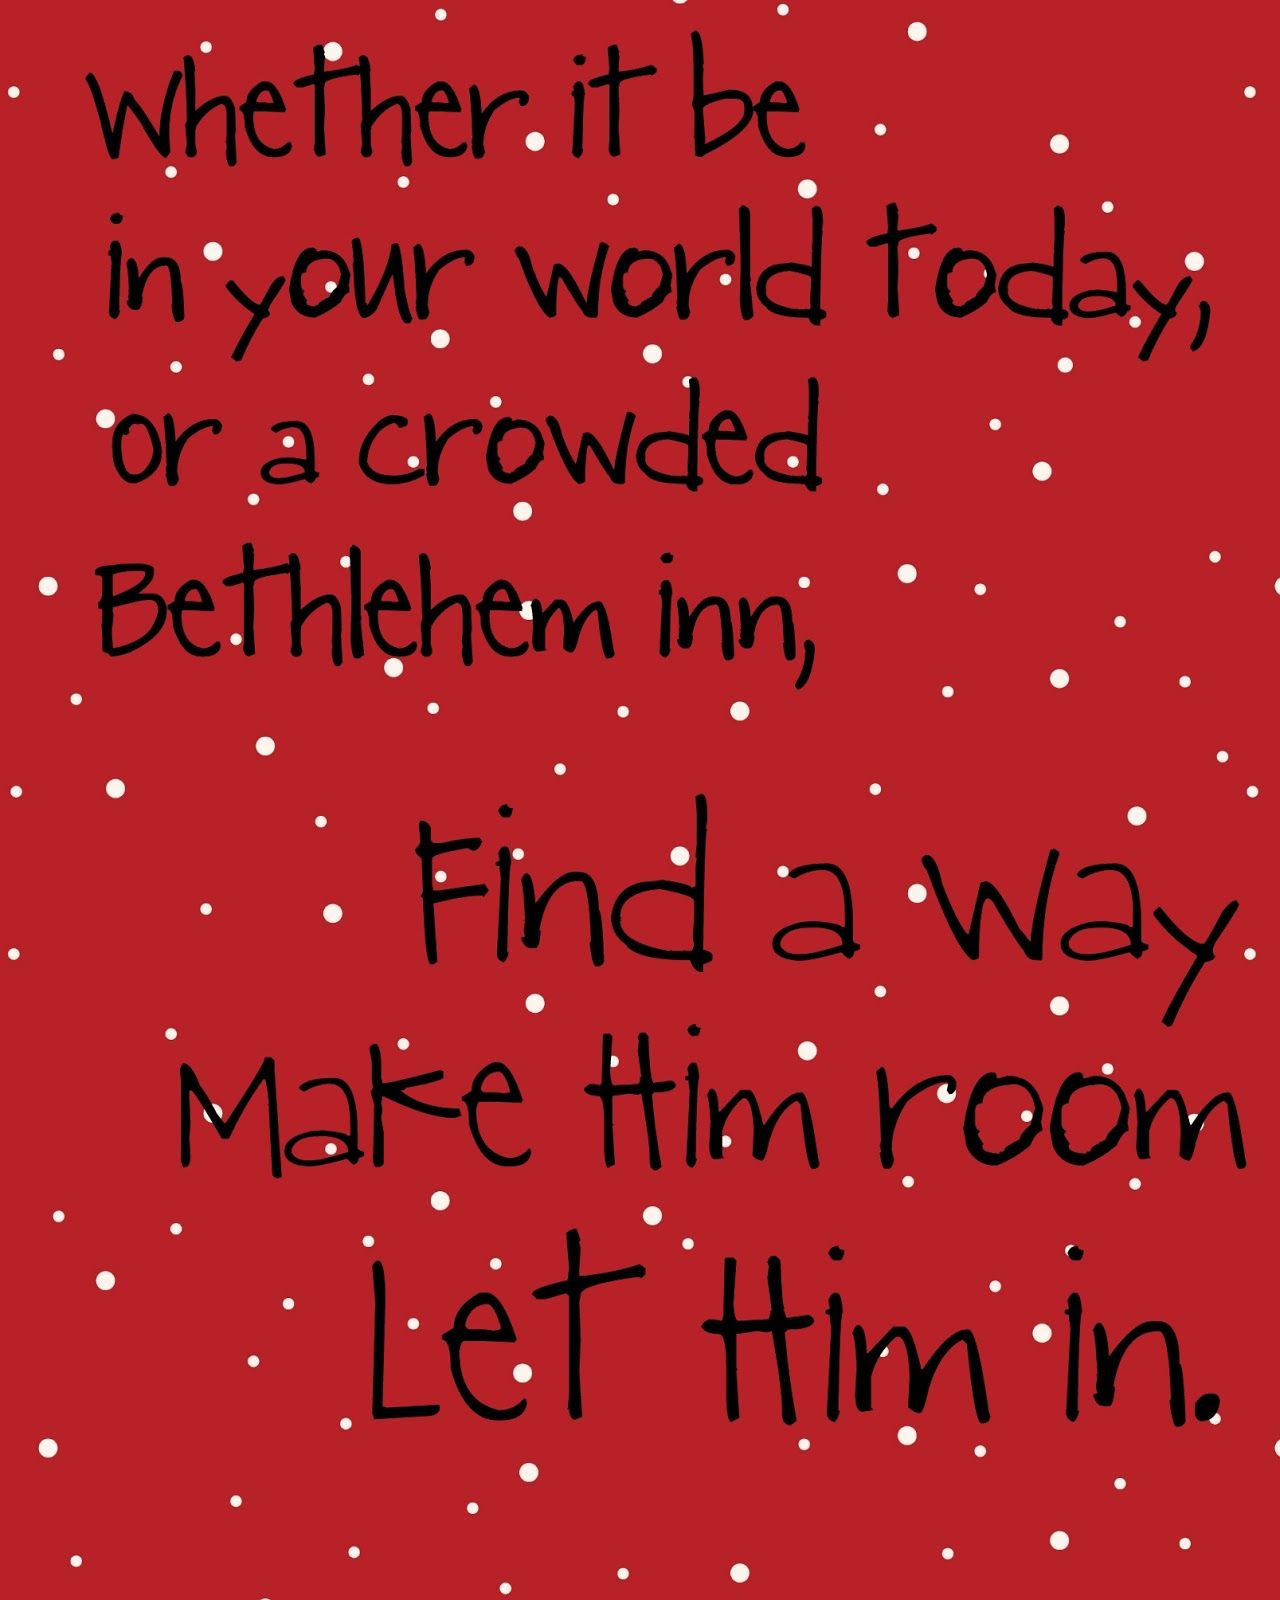 Whether it be in your world today, or a crowded Bethlehem